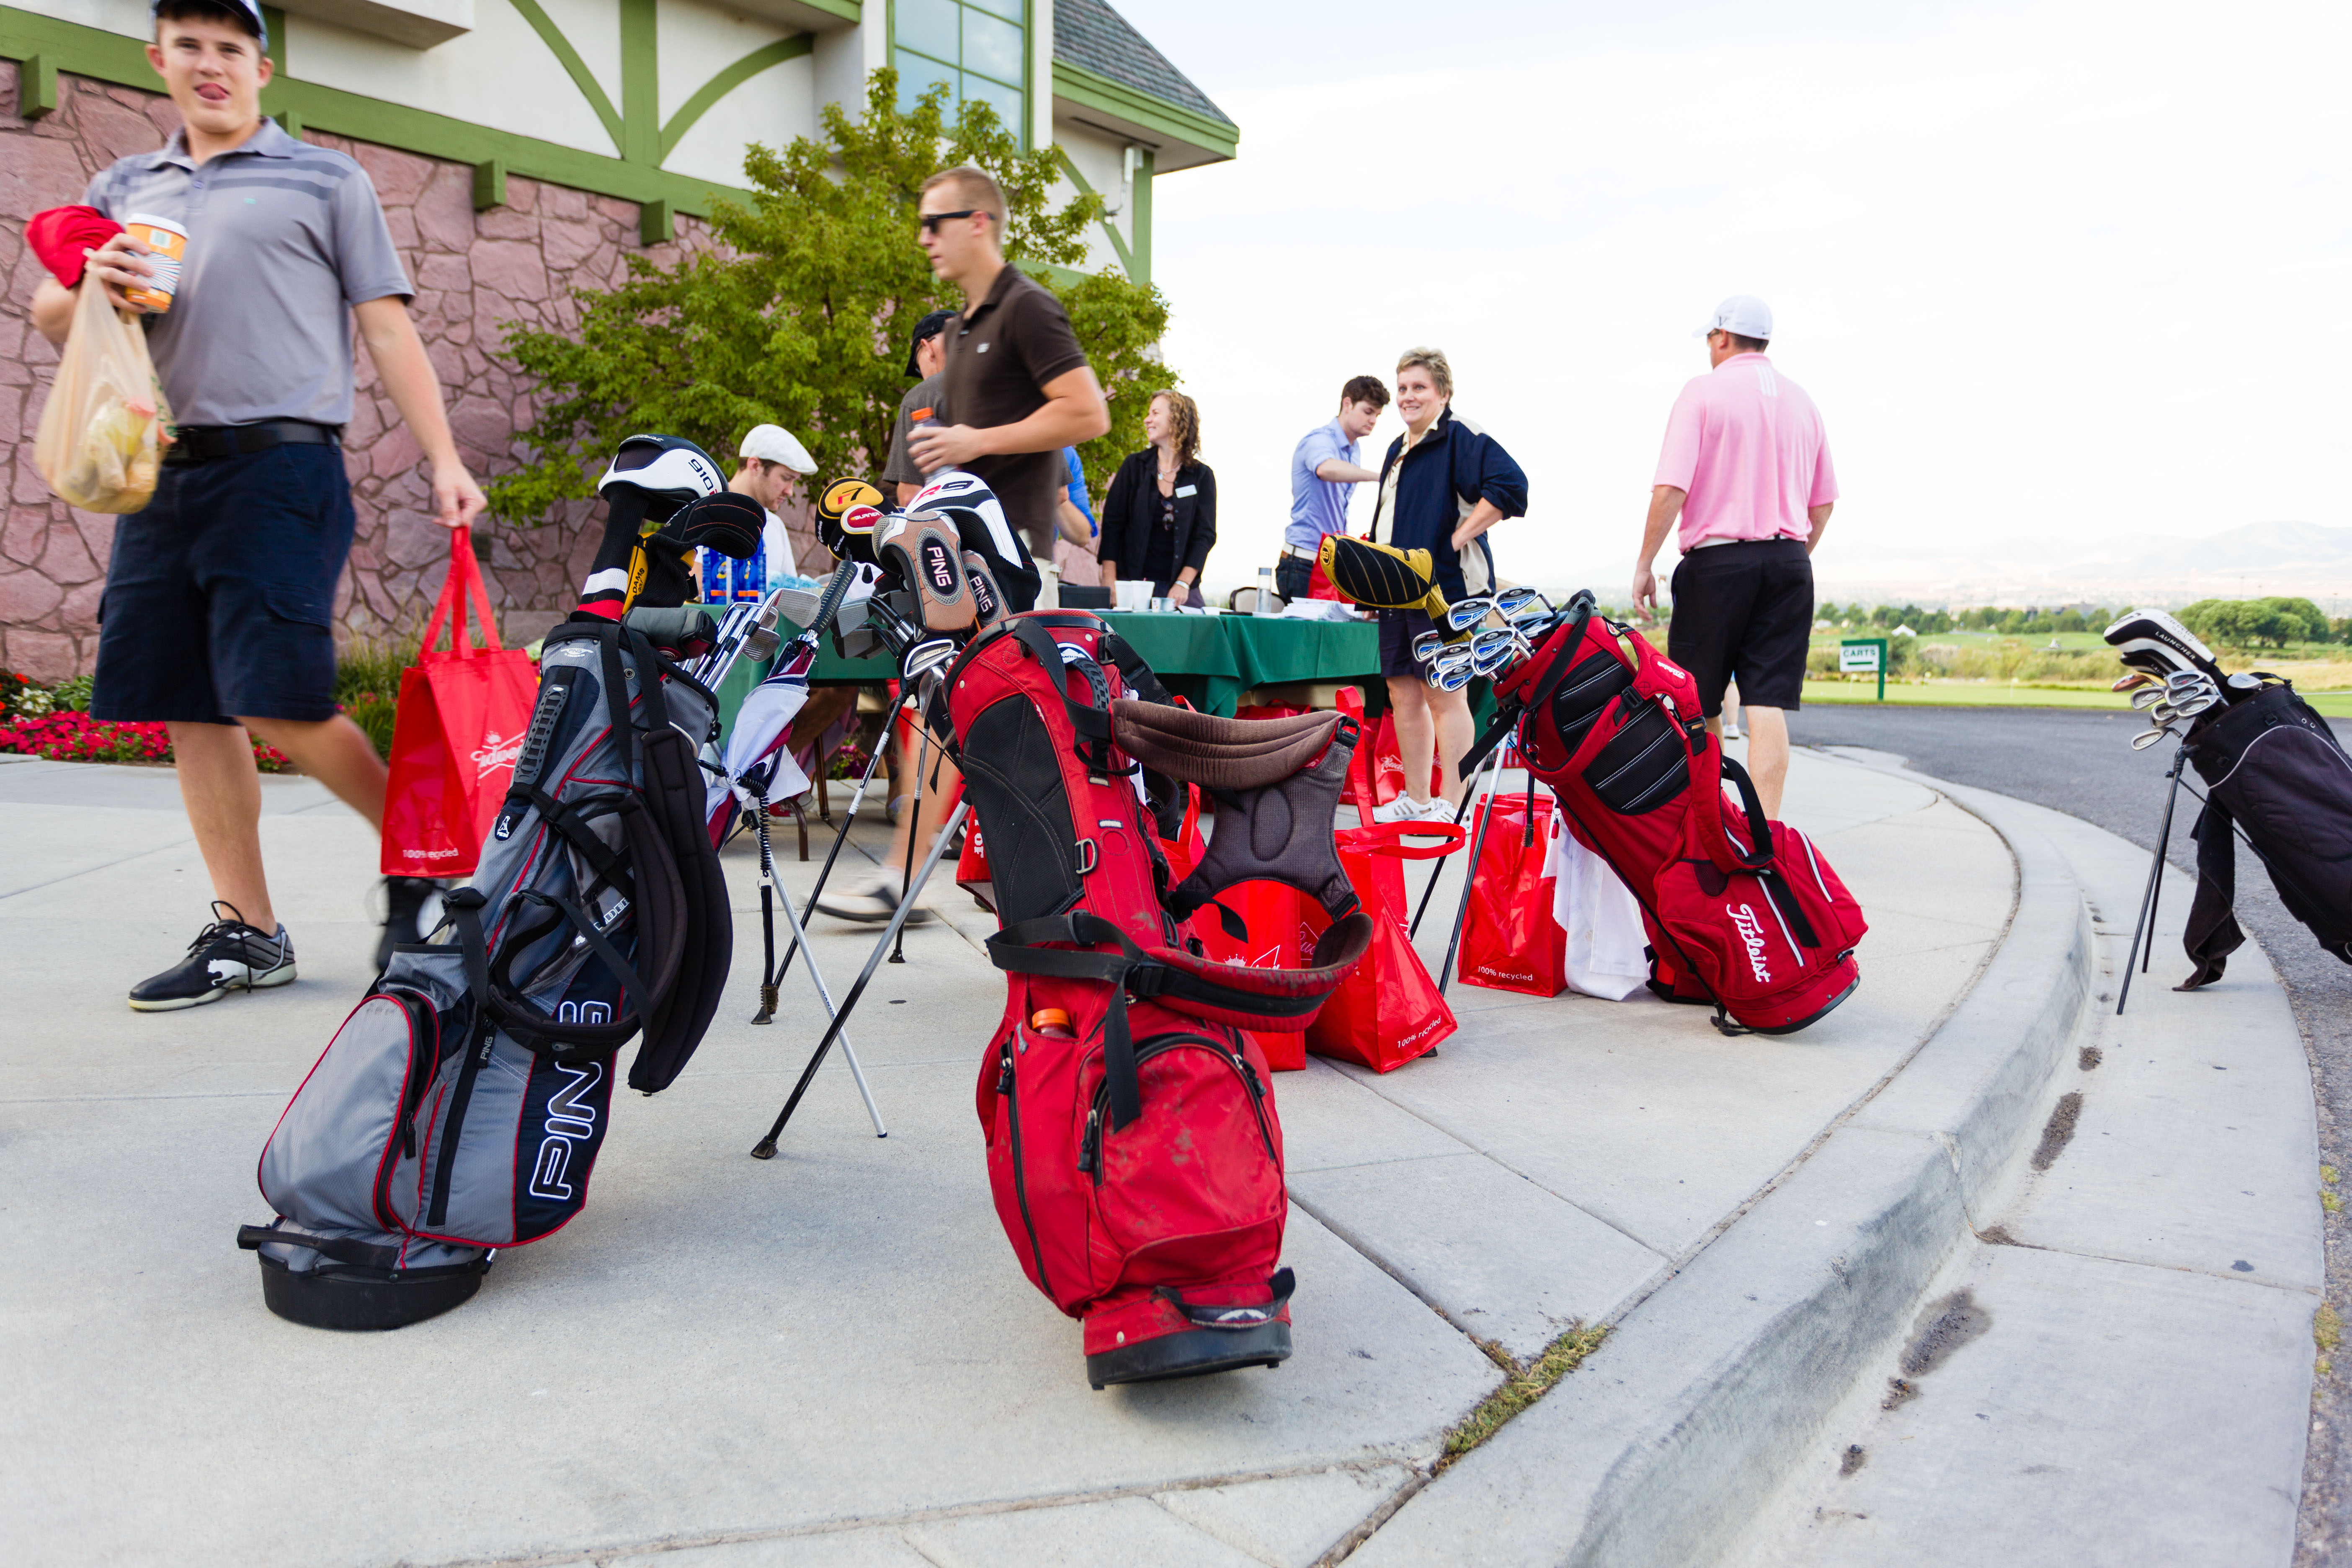 Golf bags are ready for some golf